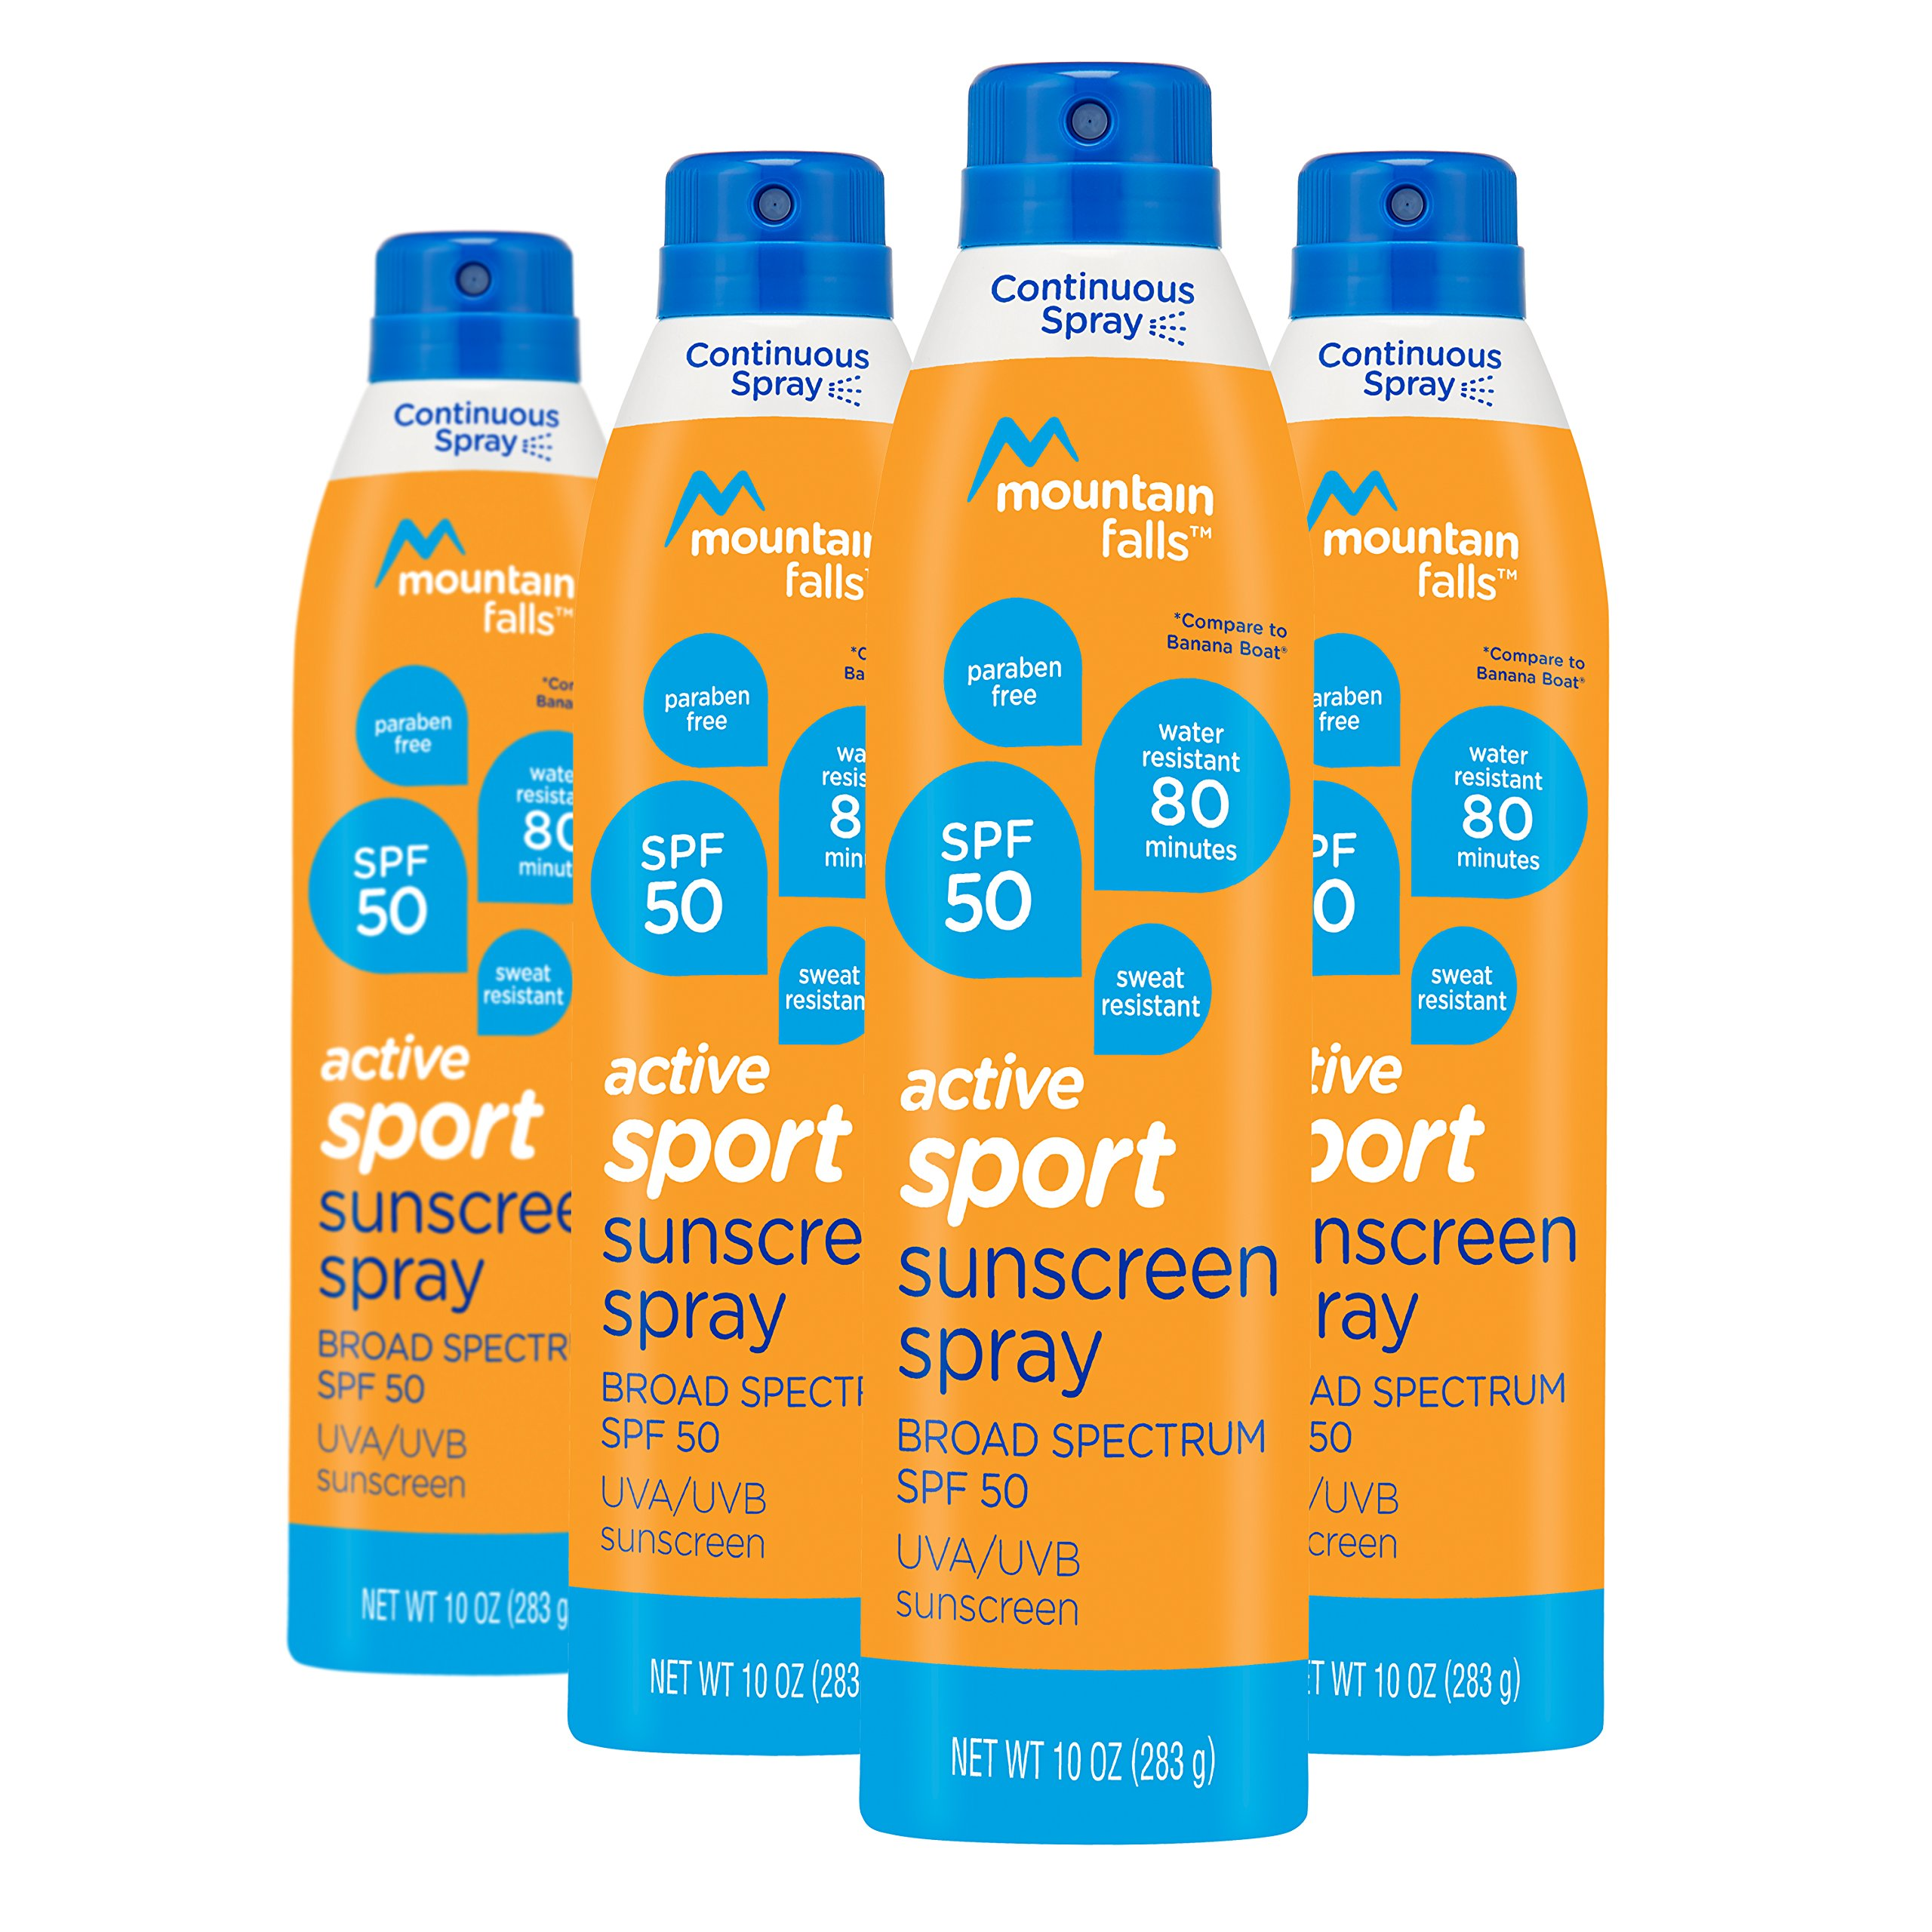 Mountain Falls Active Sport Sunscreen Continuous Spray, SPF 50 Broad Spectrum UVA/UVB Protection, Compare to Banana Boat, 10 Ounce (Pack of 4)